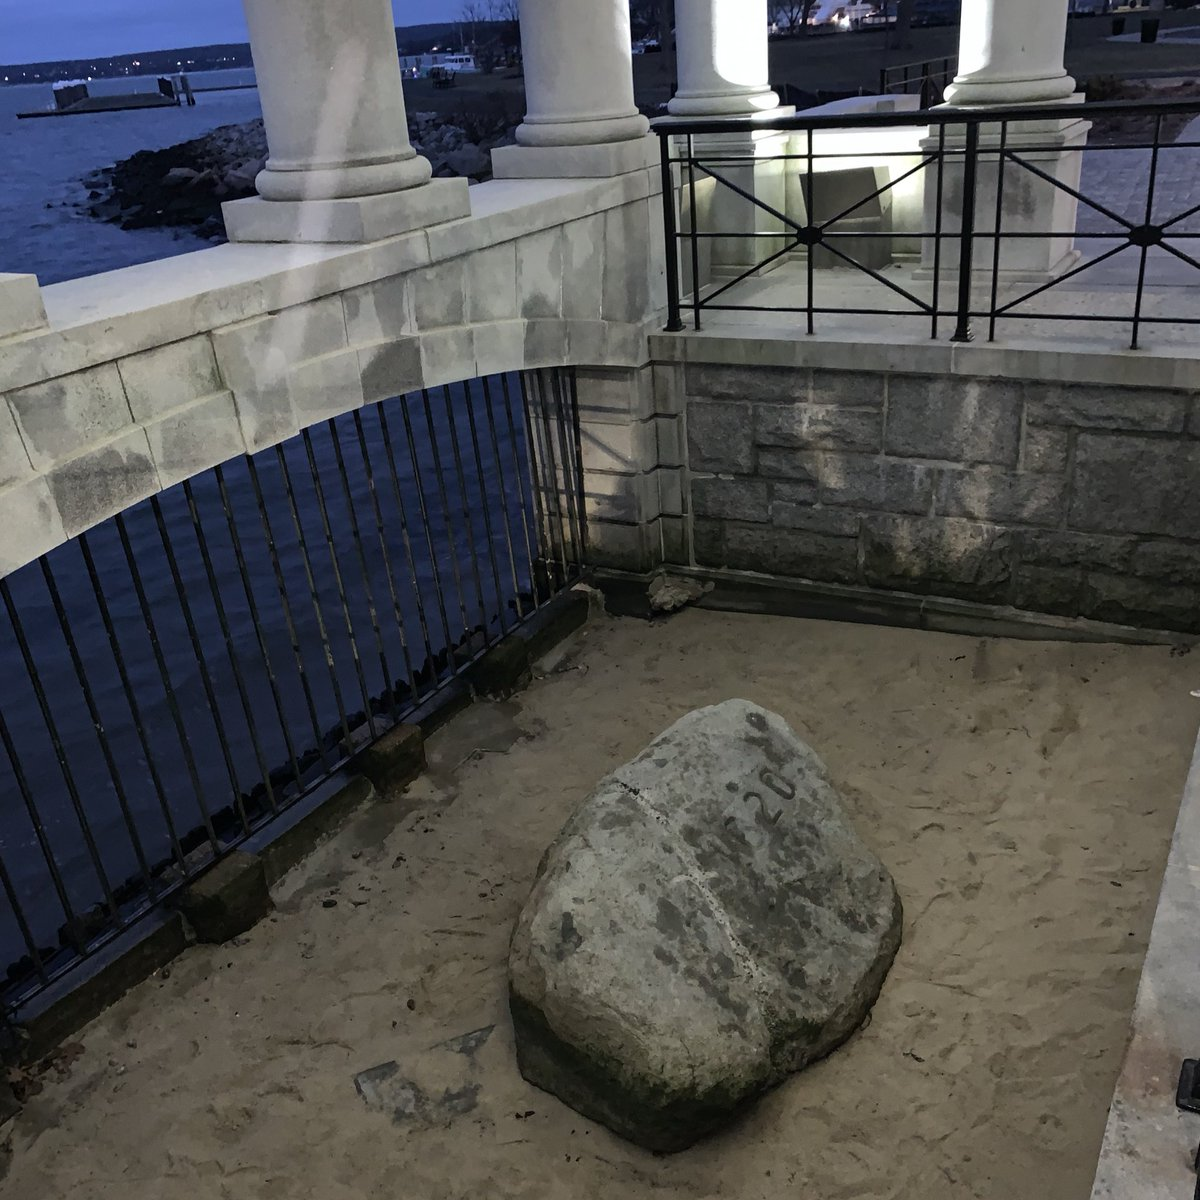 Bruh THIS is Plymouth Rock?!?!?